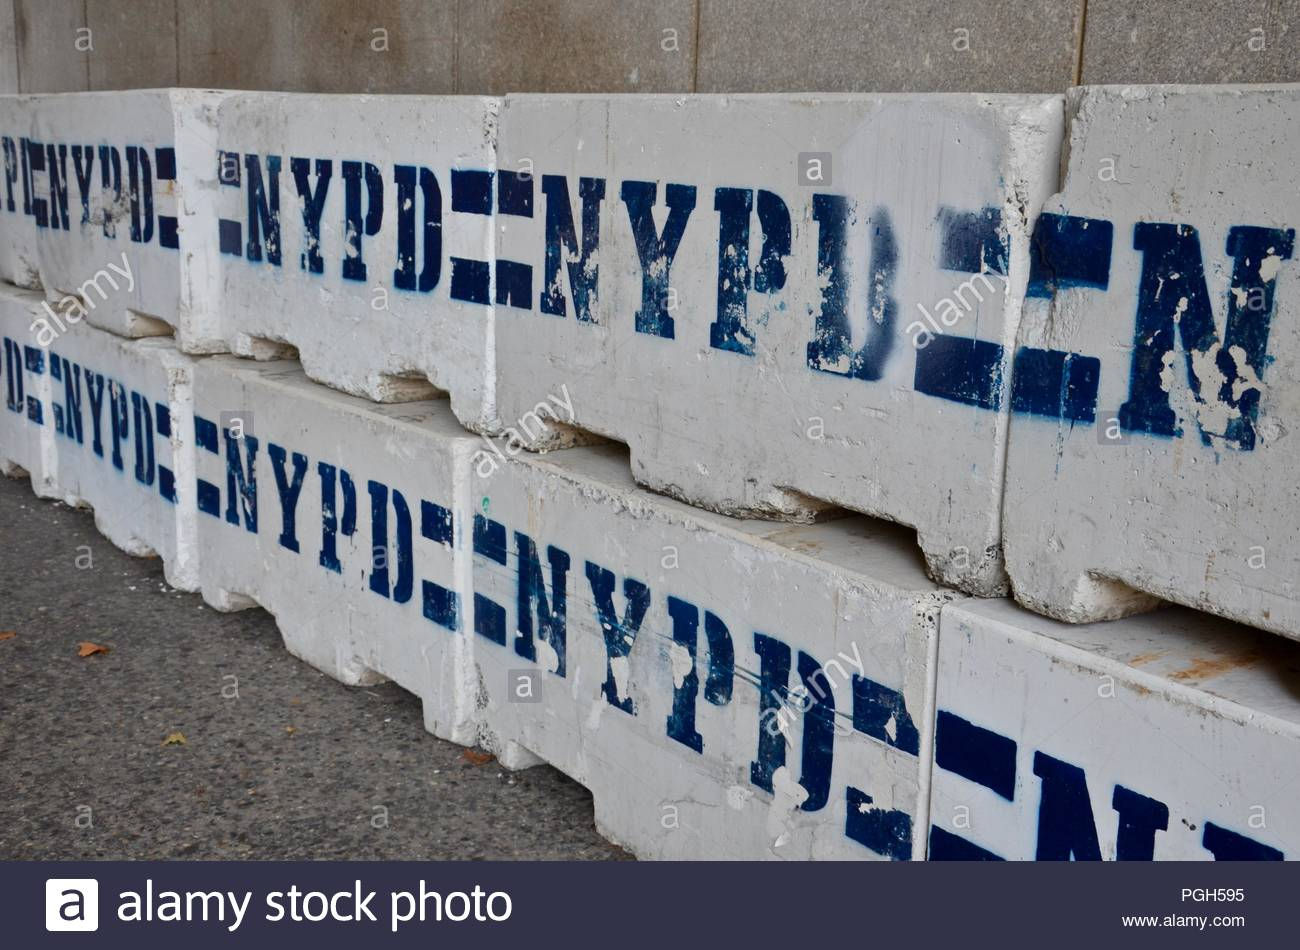 Barrier wall in New York City, USA, travel, traffic, streets, cars, vacation, urban, security, safety, wall, architecture, background, day, symbol - Stock Image